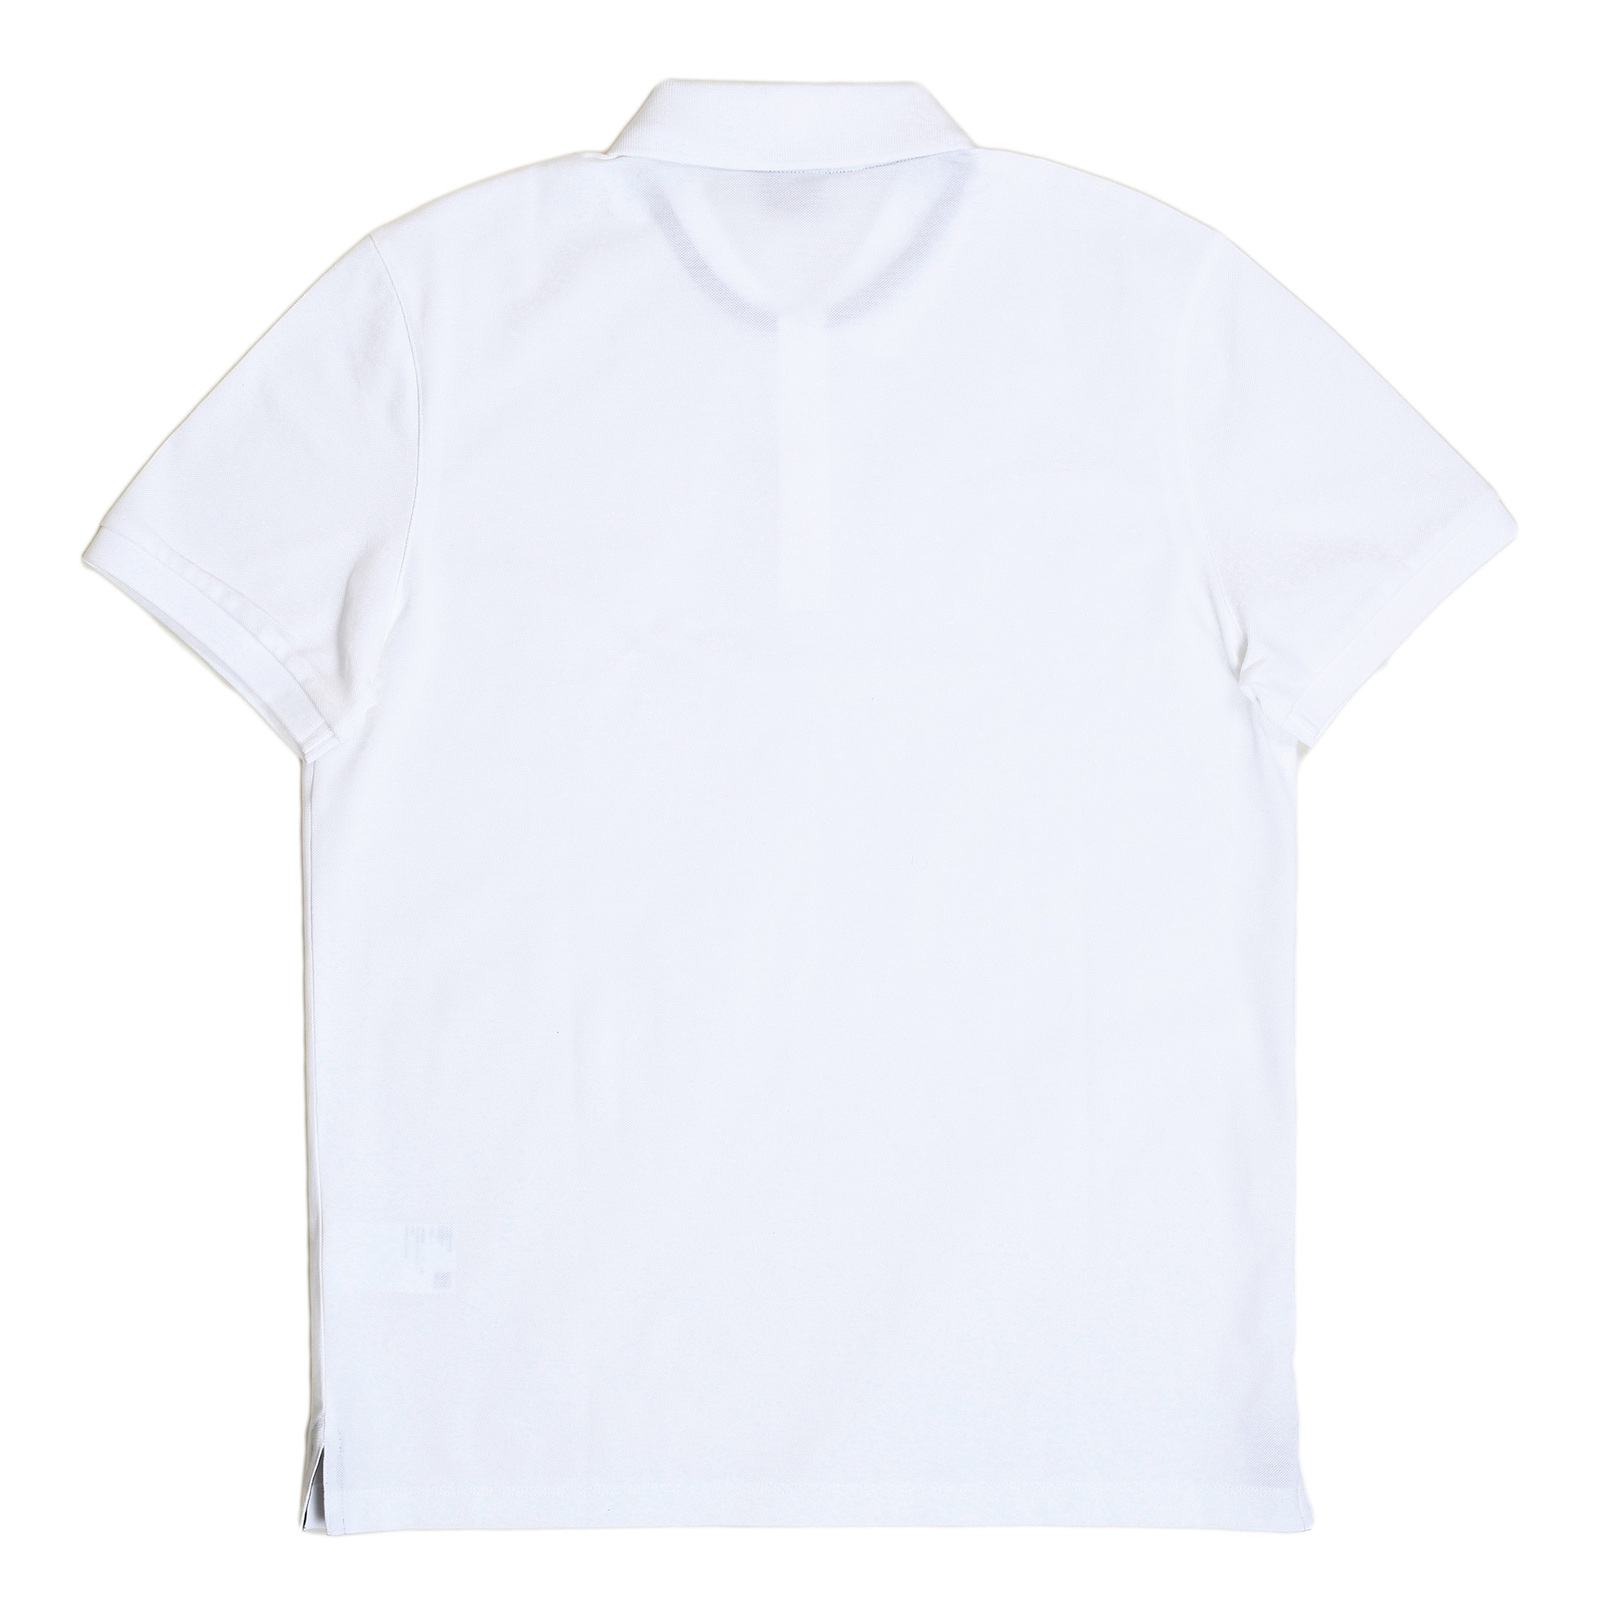 331968466c60 Stylish White Plain Polo T Shirts for Men by Boss Black